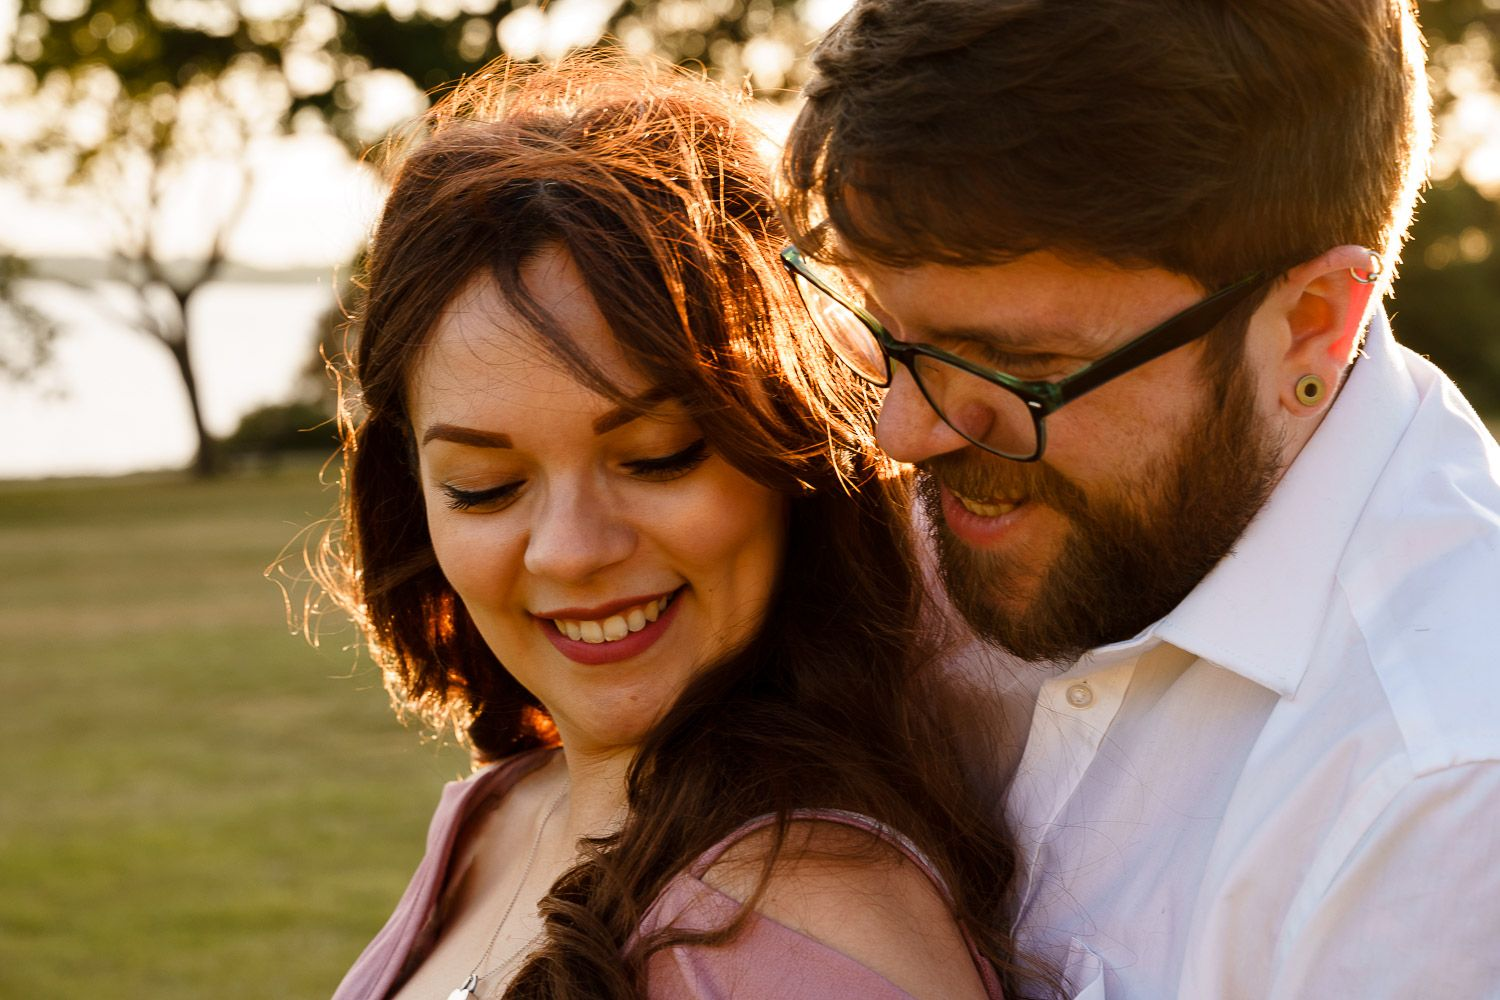 Close up of happy couples' faces at their Southampton maternity photoshoot.